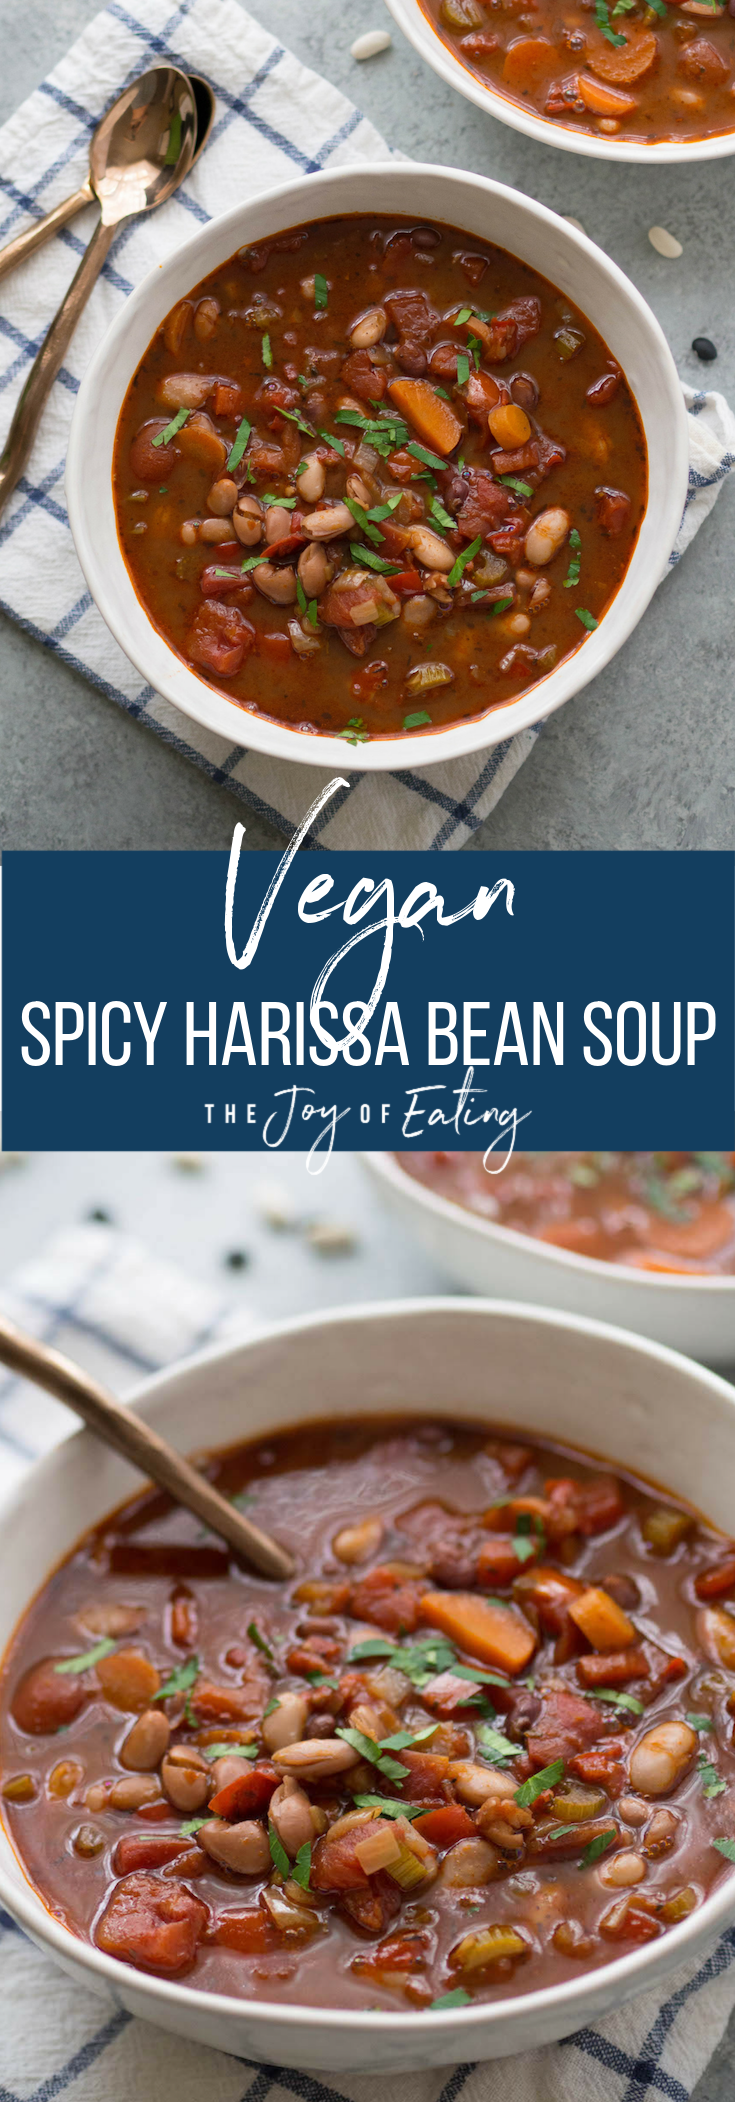 Spicy Harissa Bean Soup! This simple recipe uses up any leftover dry beans you have on hand! #vegan #vegetarian #soup #beansoup #budgetfriendly #healthy #driedbeans